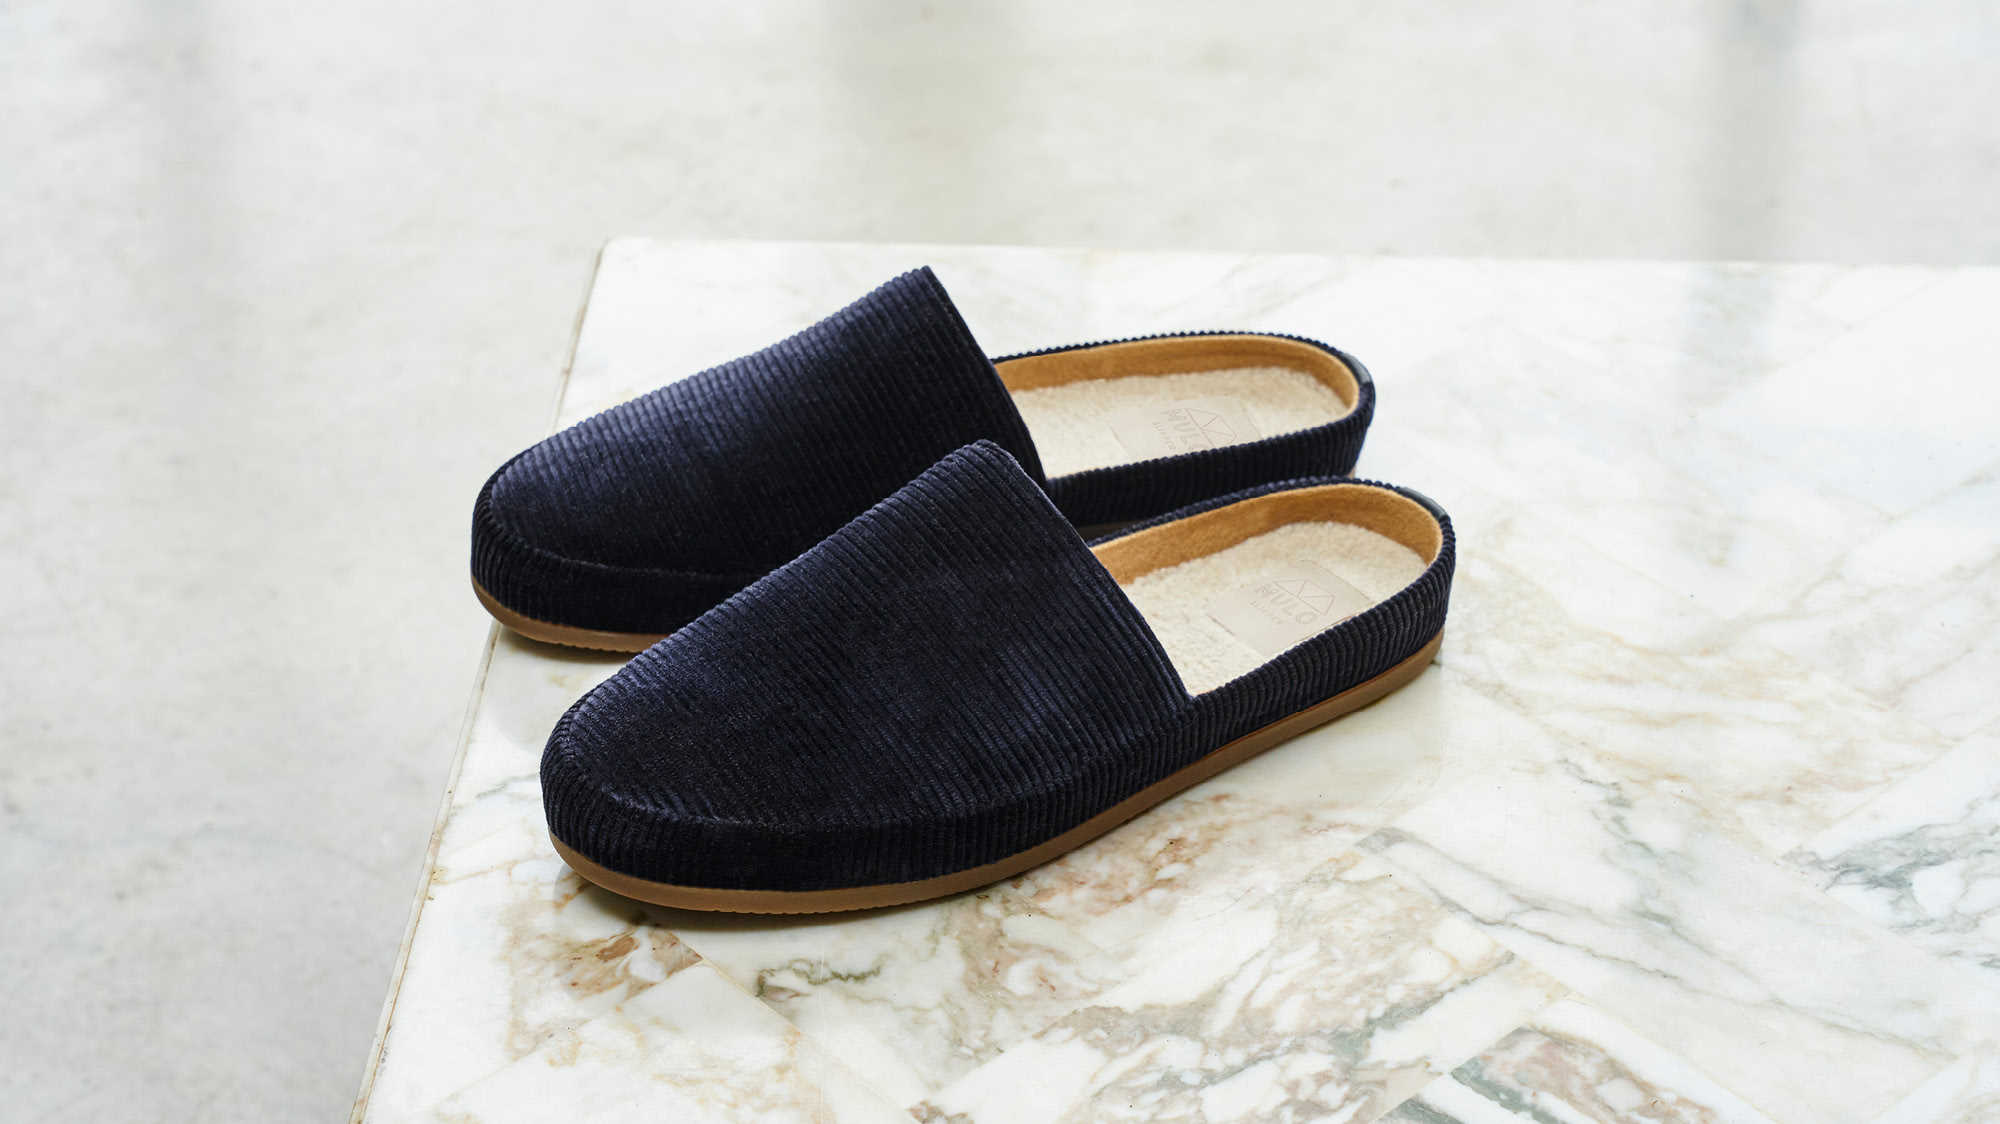 Handmade Slippers for Men for Homeworking and Lounging in Style